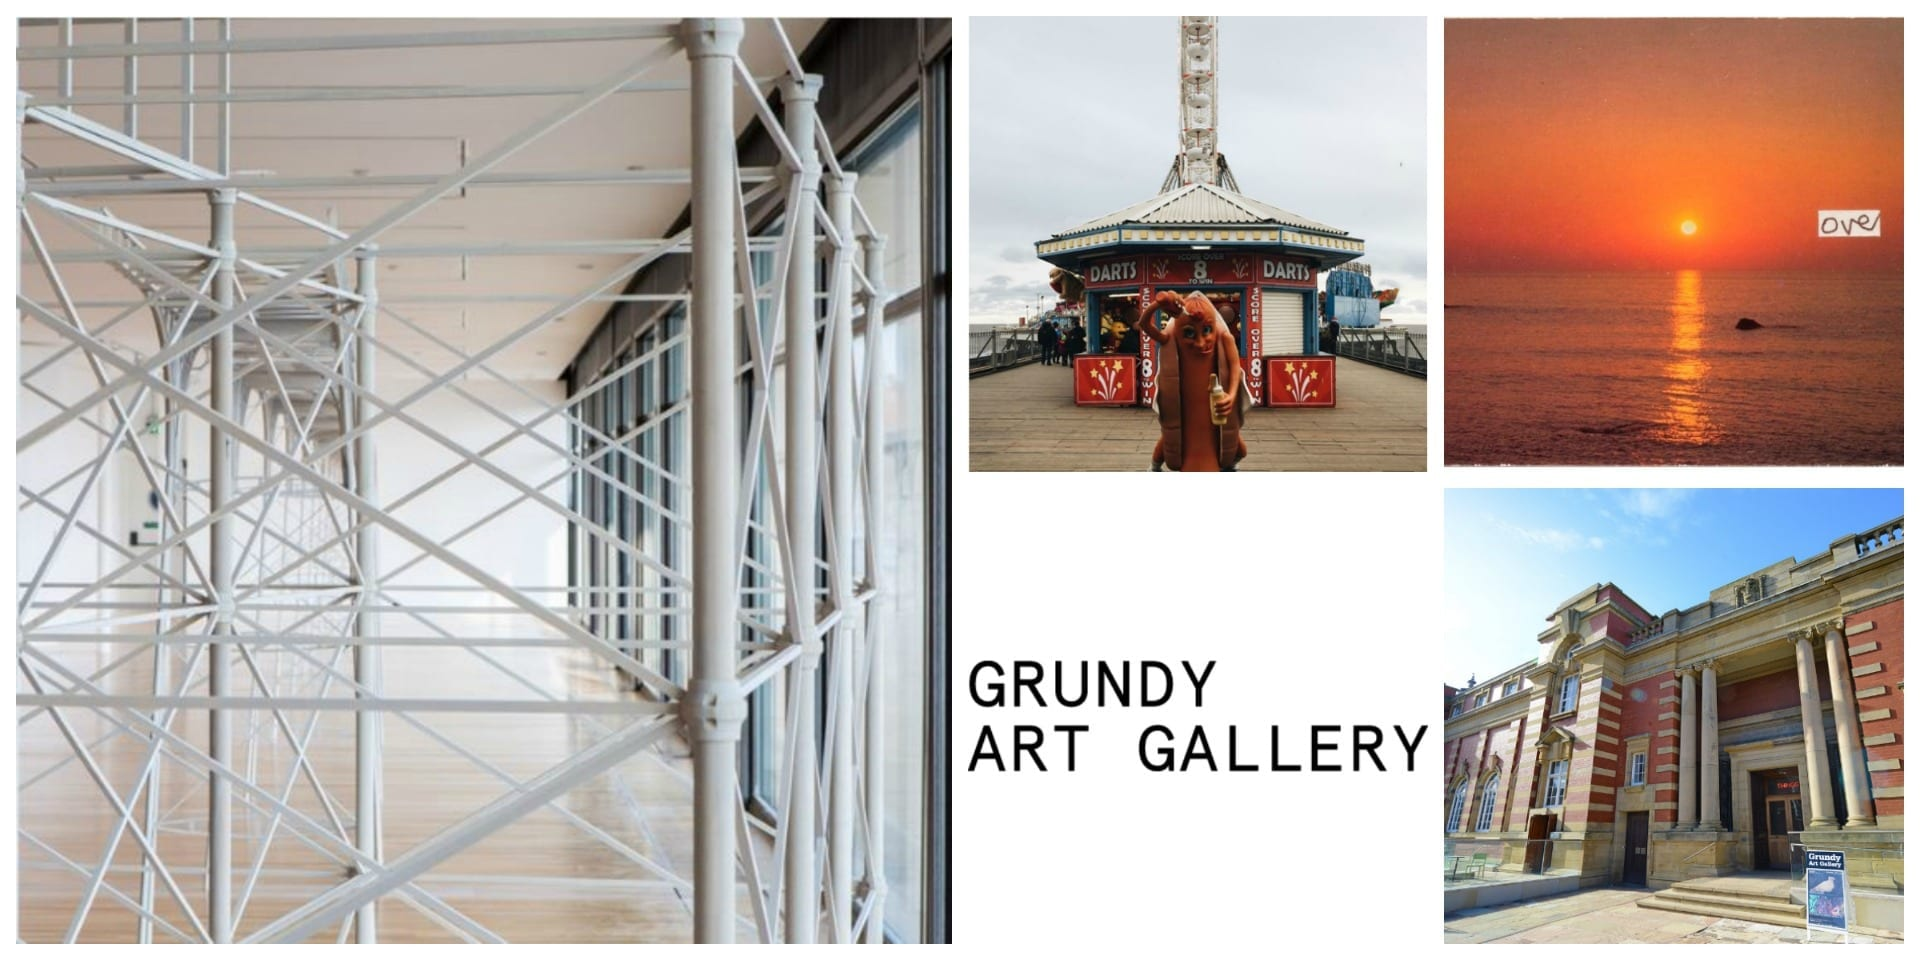 Spring Programme 2018 at Grundy Art Gallery